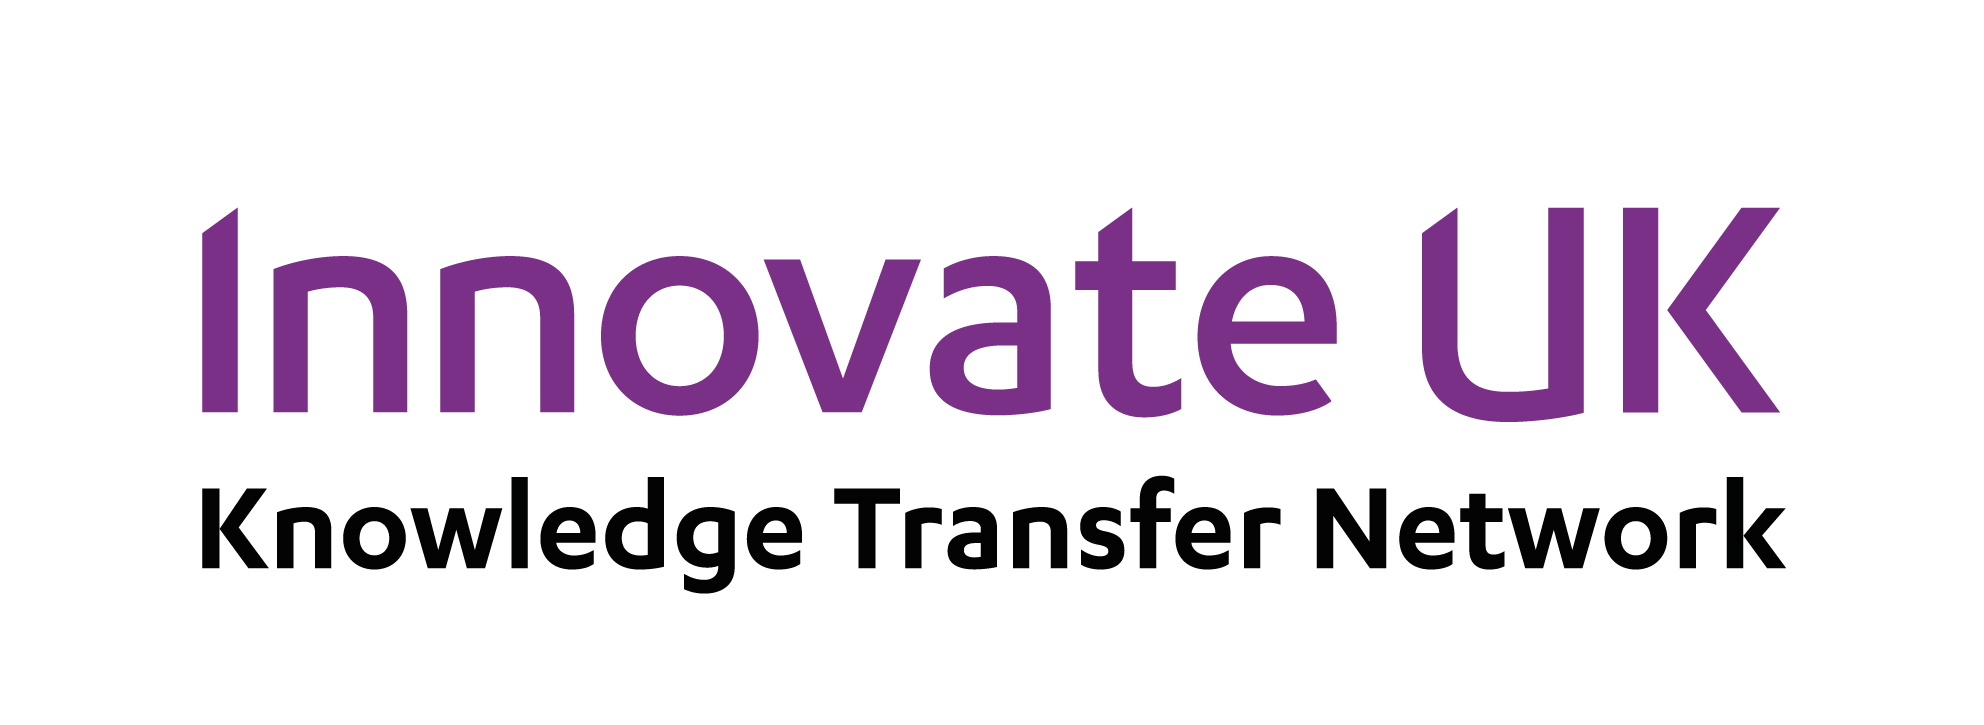 innovate_uk_ktn_logo_surround_v1.jpg